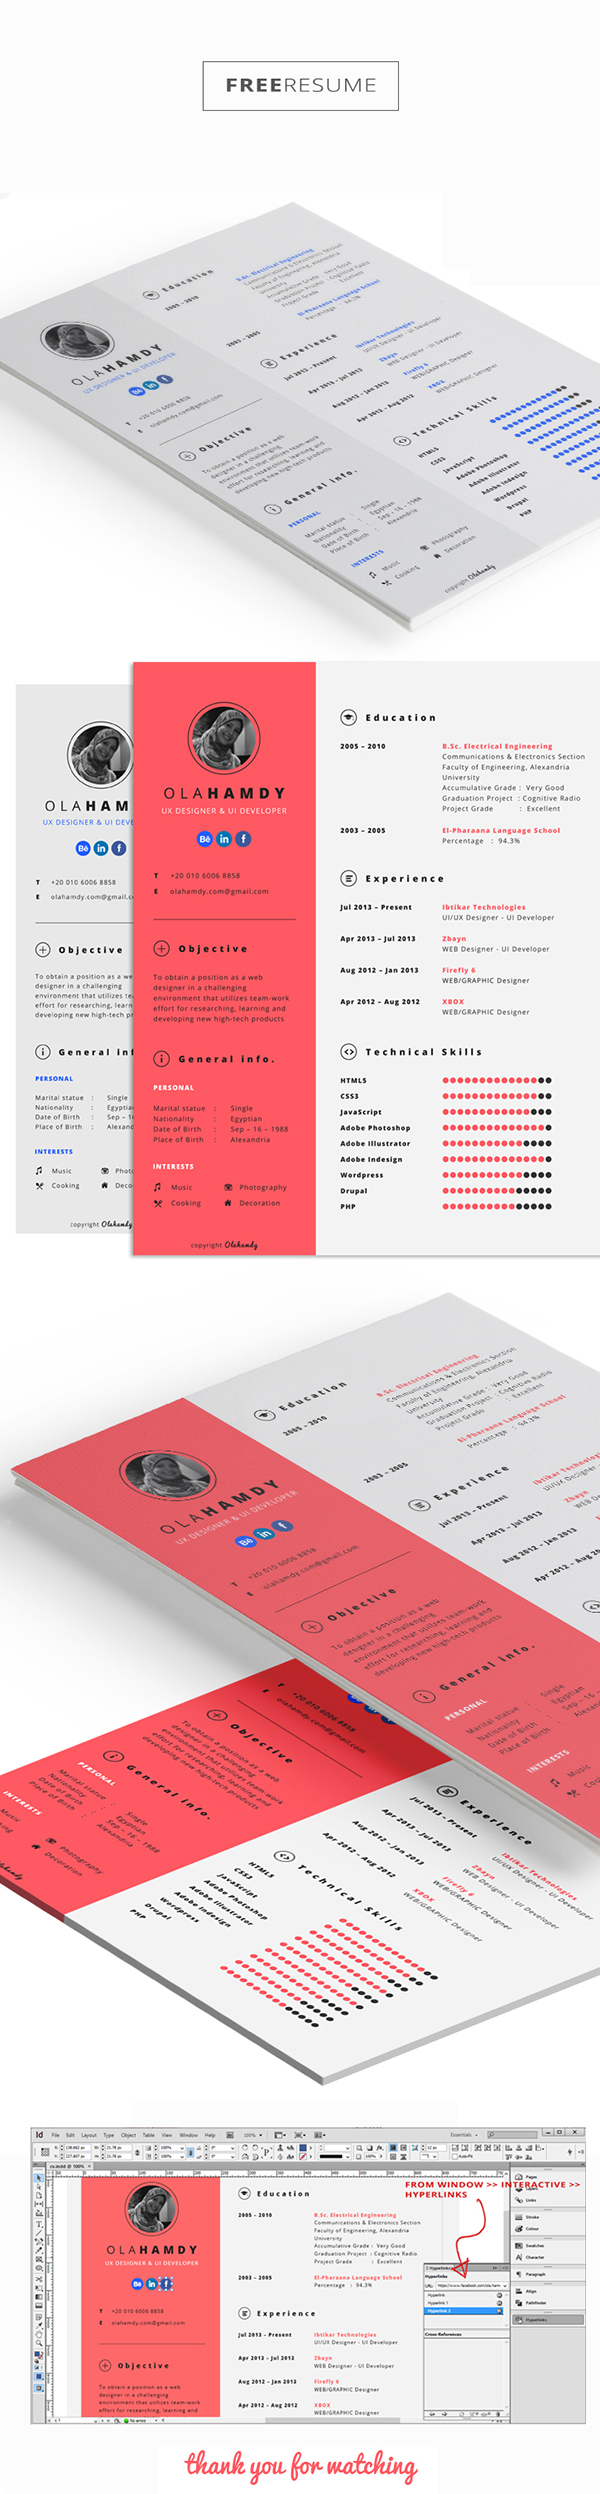 interactive resume template